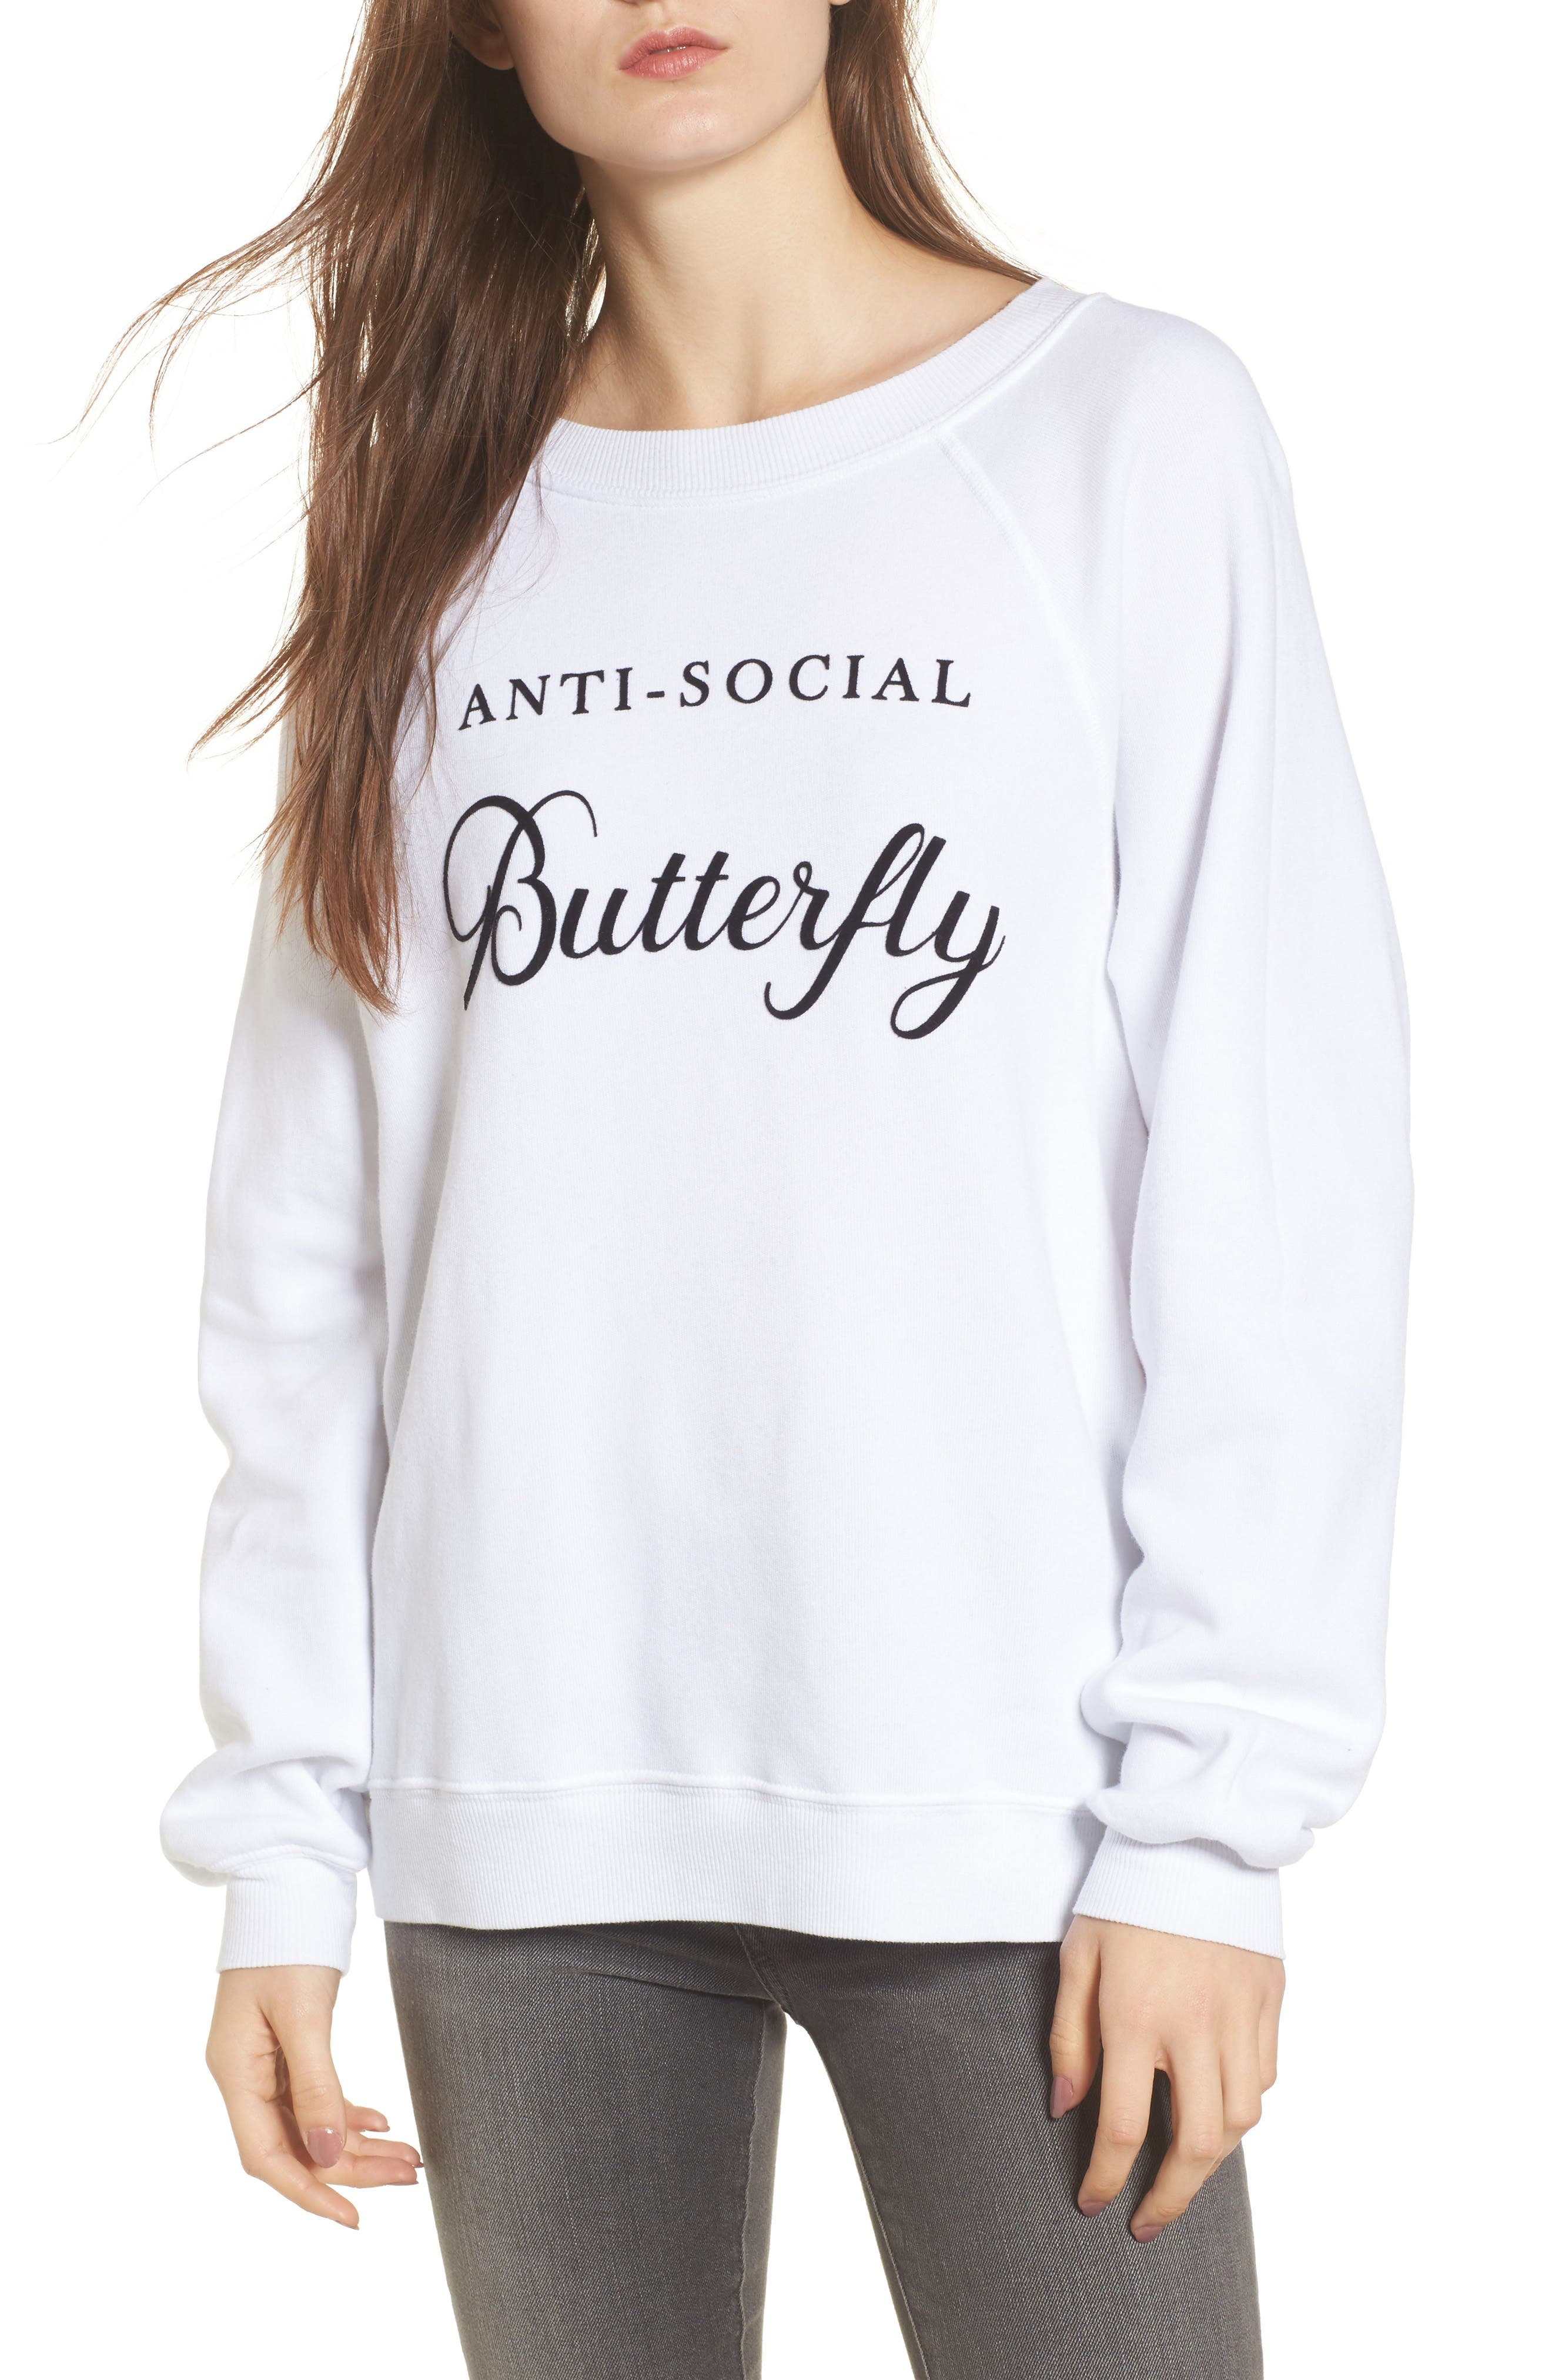 Anti-Social Butterfly Sweatshirt,                             Main thumbnail 1, color,                             100